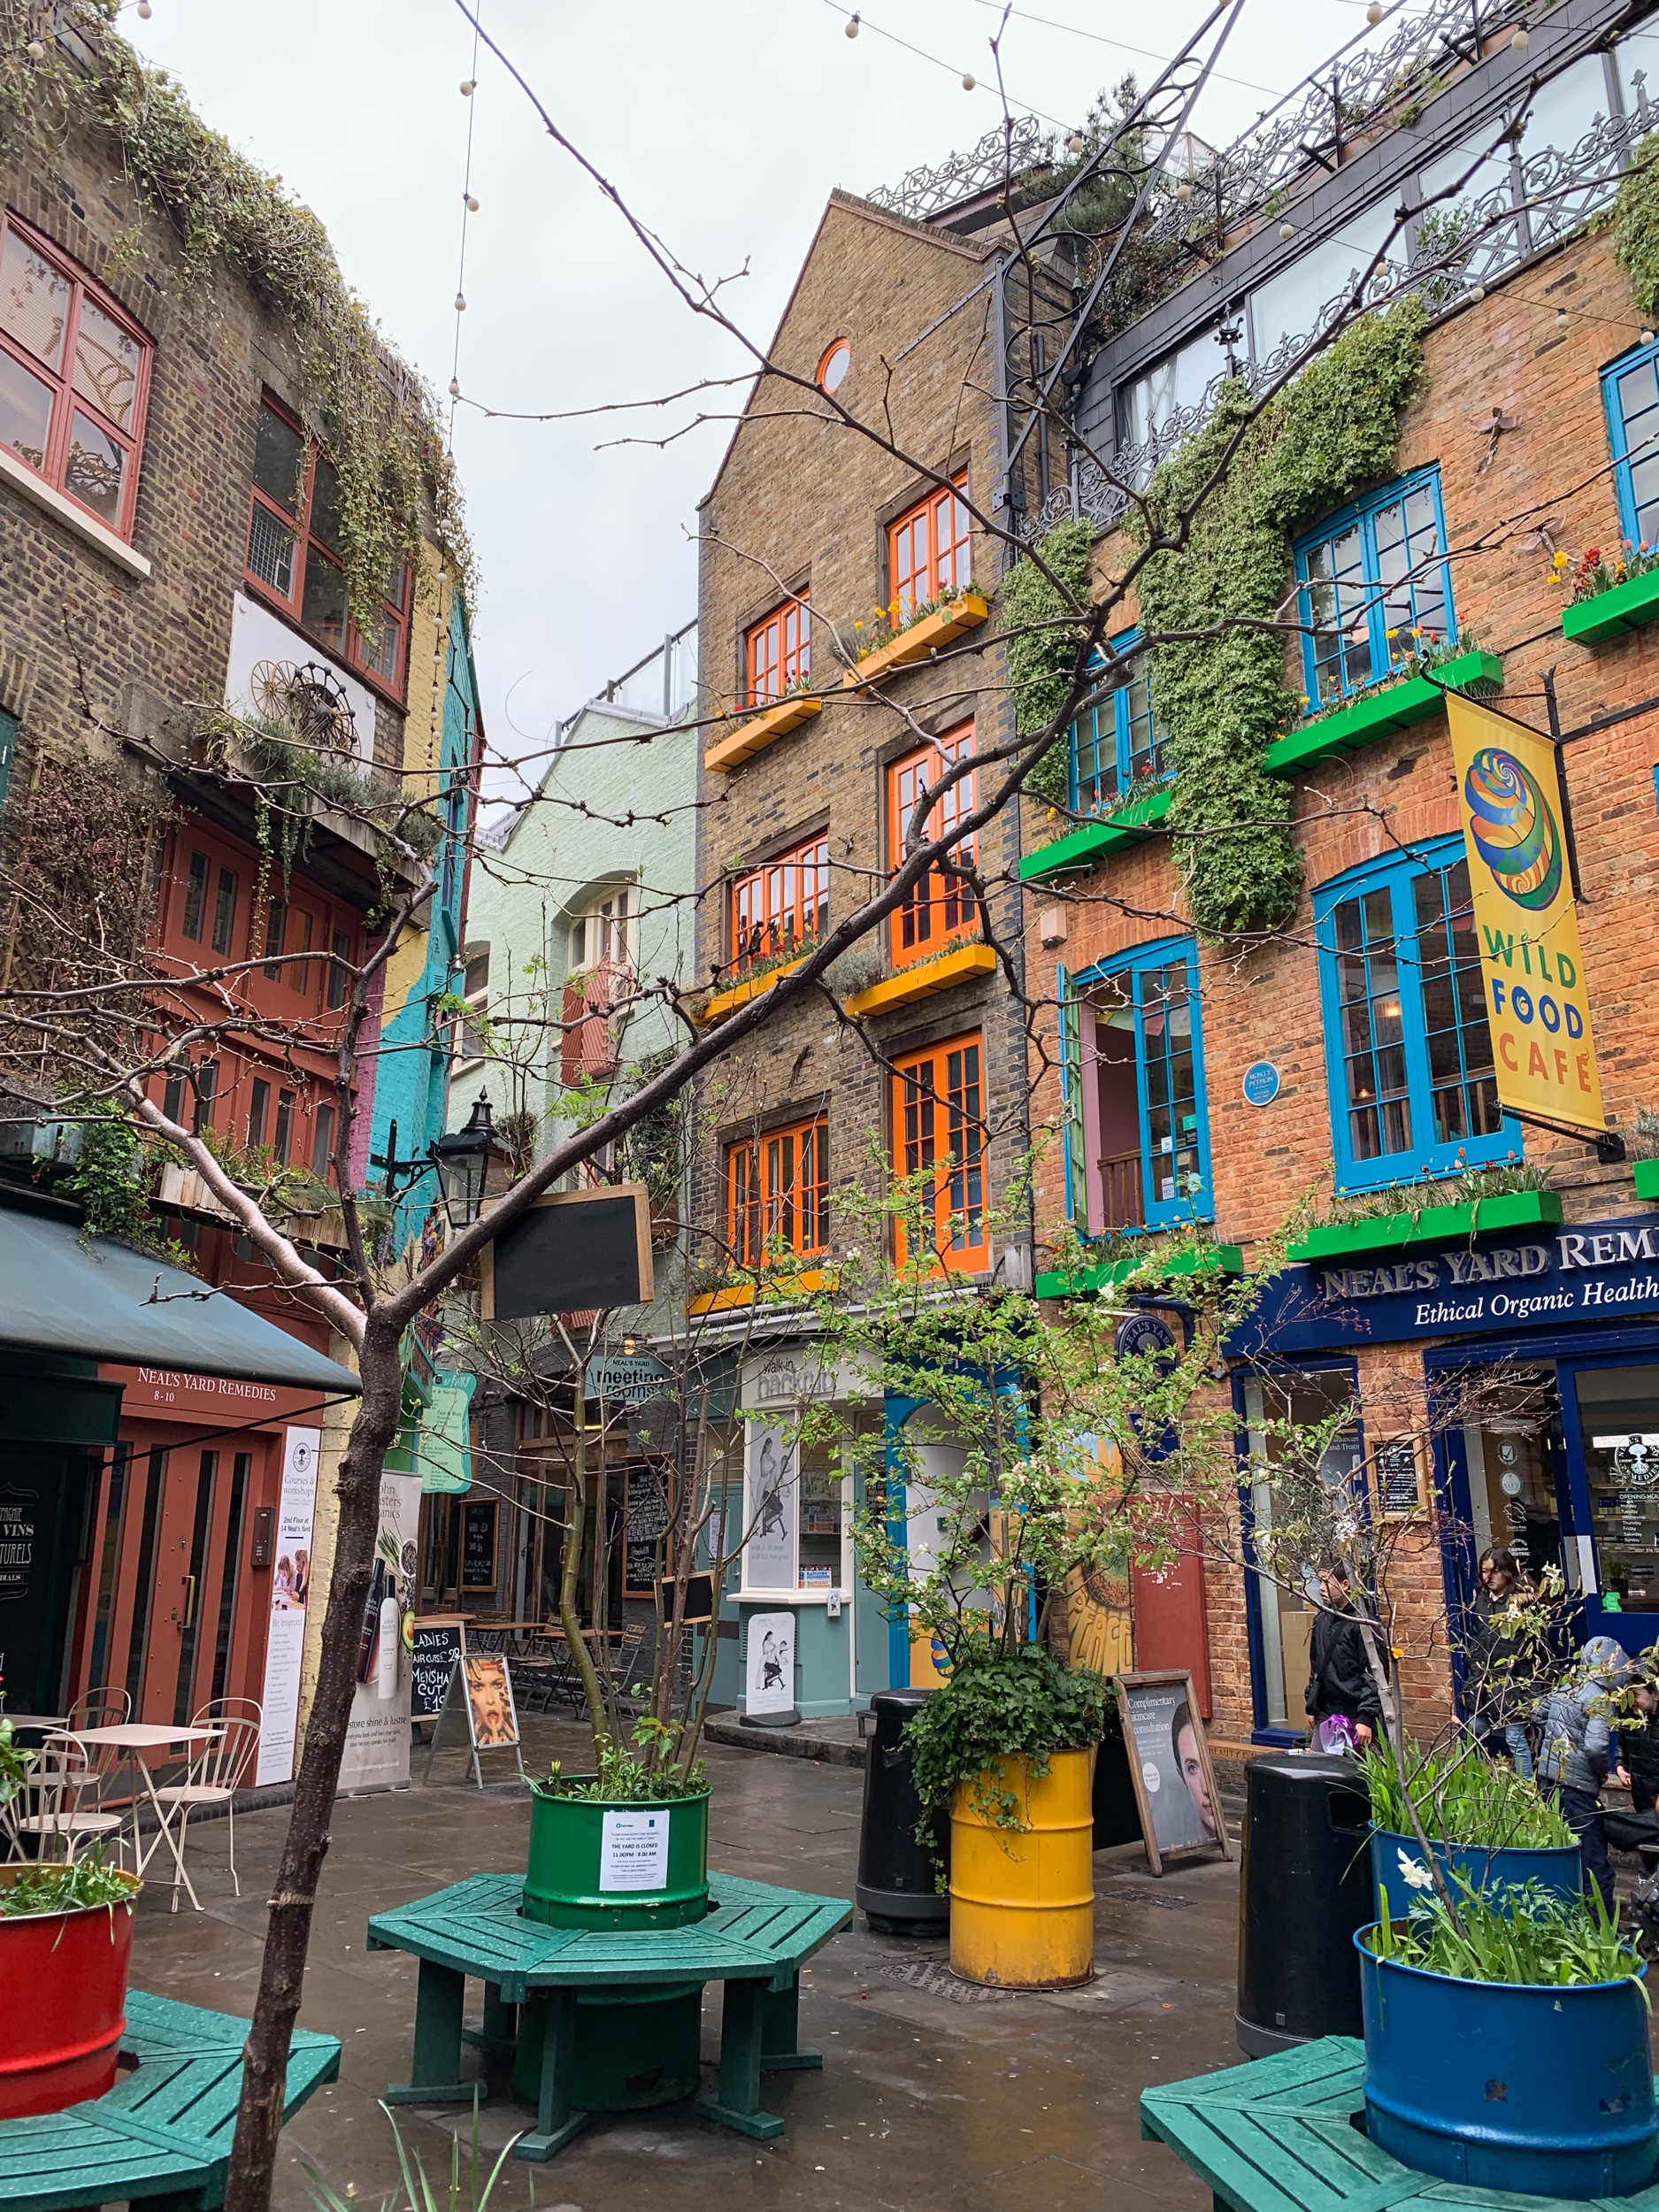 Brightly coloured Neal's Yard